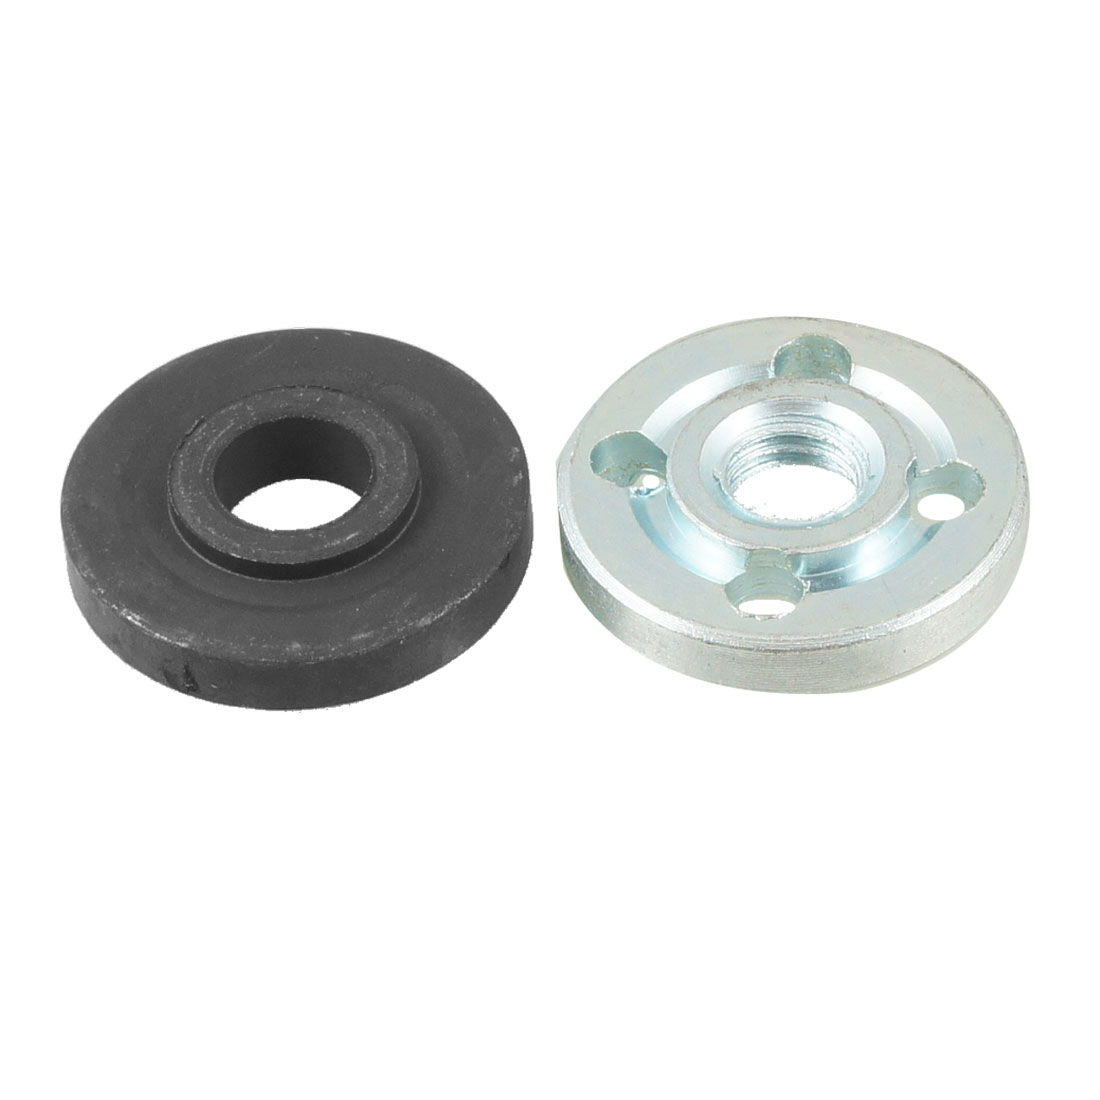 "1.2"" Diameter Inner Outer Flange Parts for Cut off Machine Black Silver Tone"